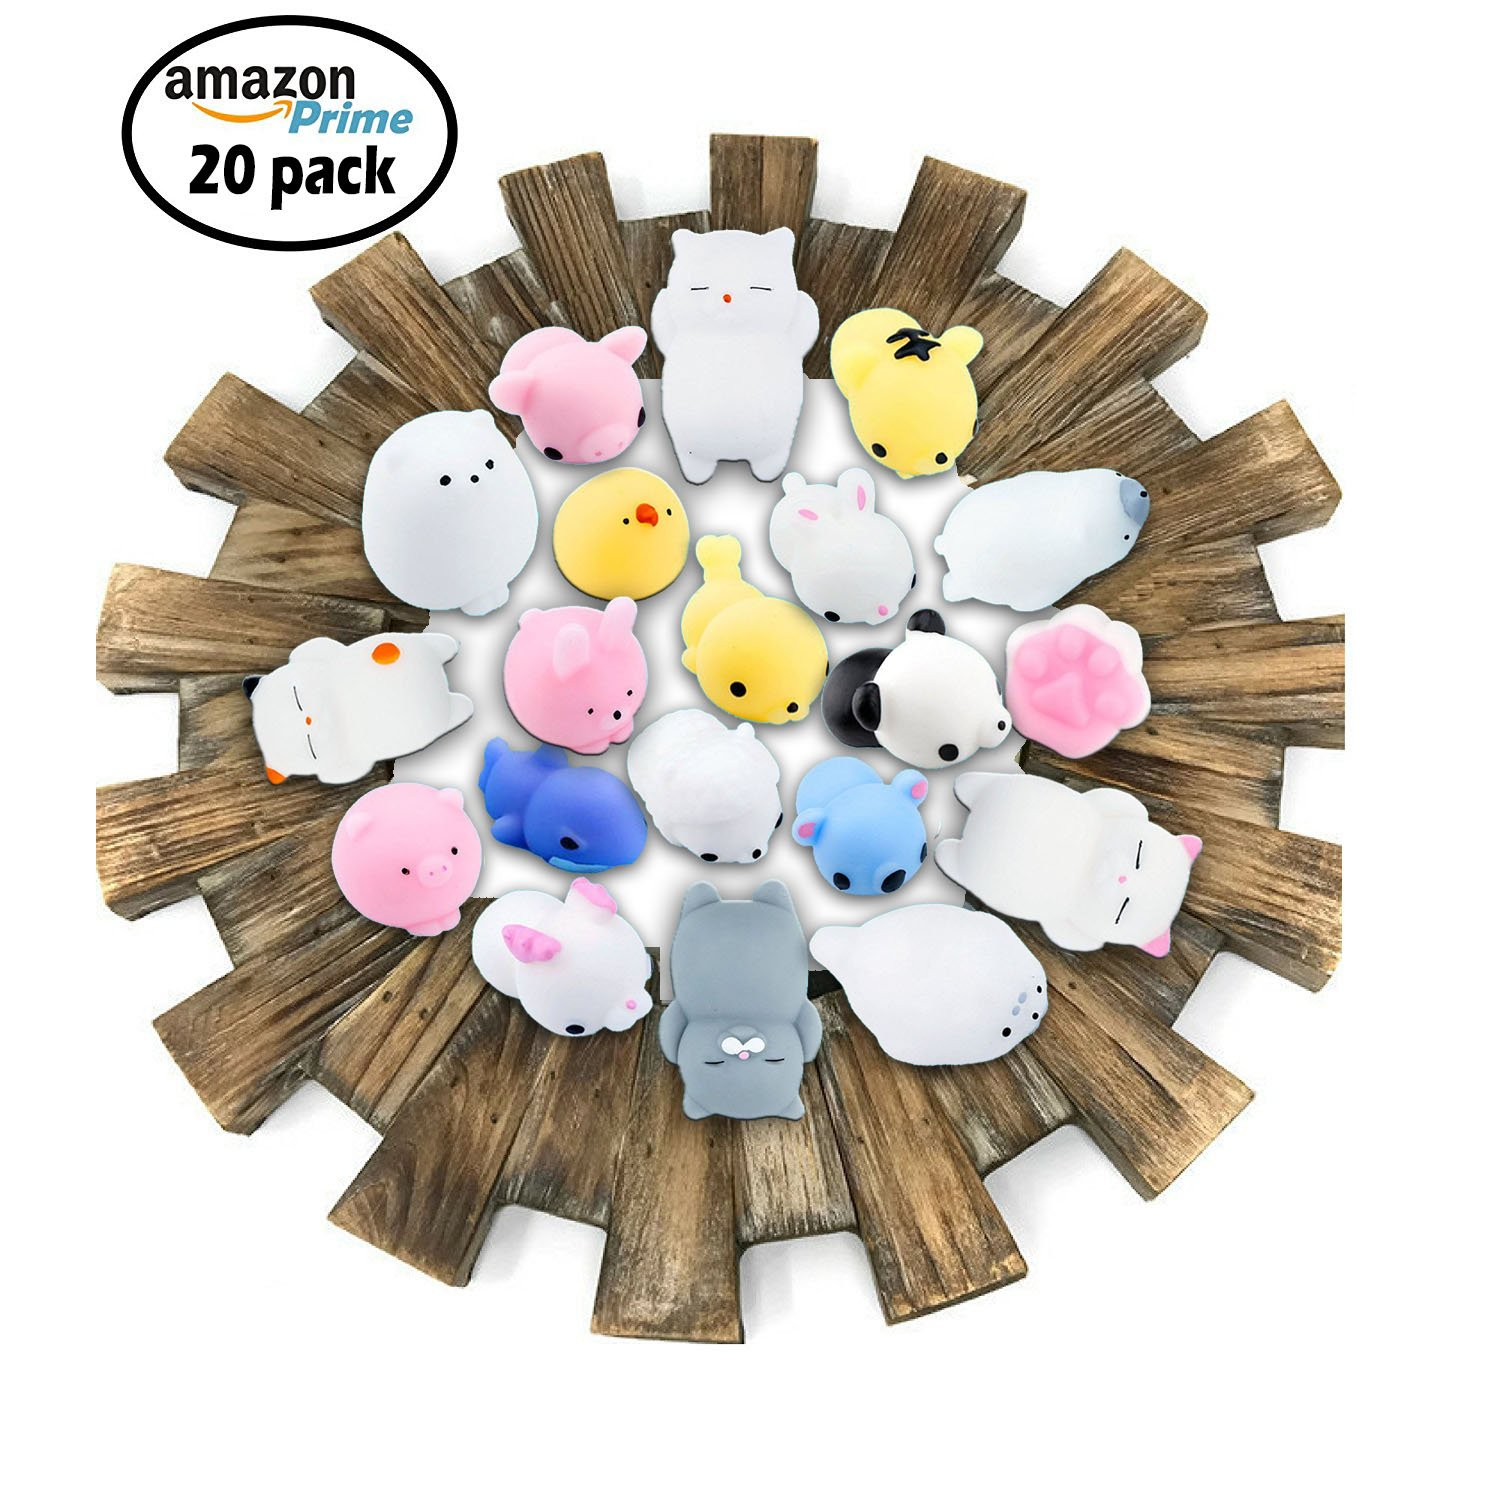 CETIM Mochi Squishy Toy, 20 Pcs Mini Mochi Kawaii Animal Squishies, Soft Squeeze Stress Reliever Balls Toys for Kids And Adults, Pefect Party Favors